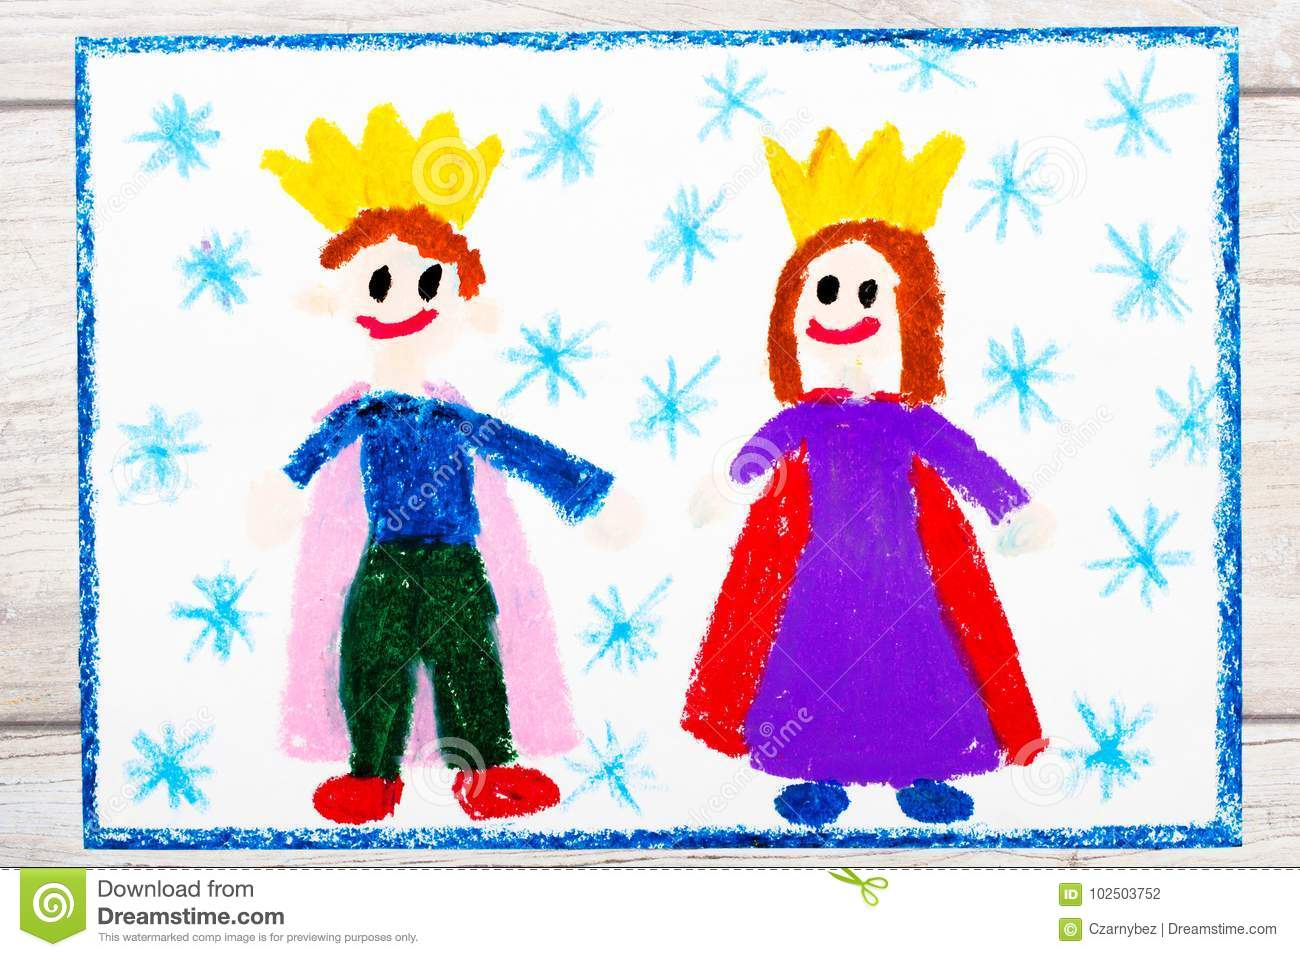 Drawing Smiling King And Queen With Their Crowns Stock Illustration